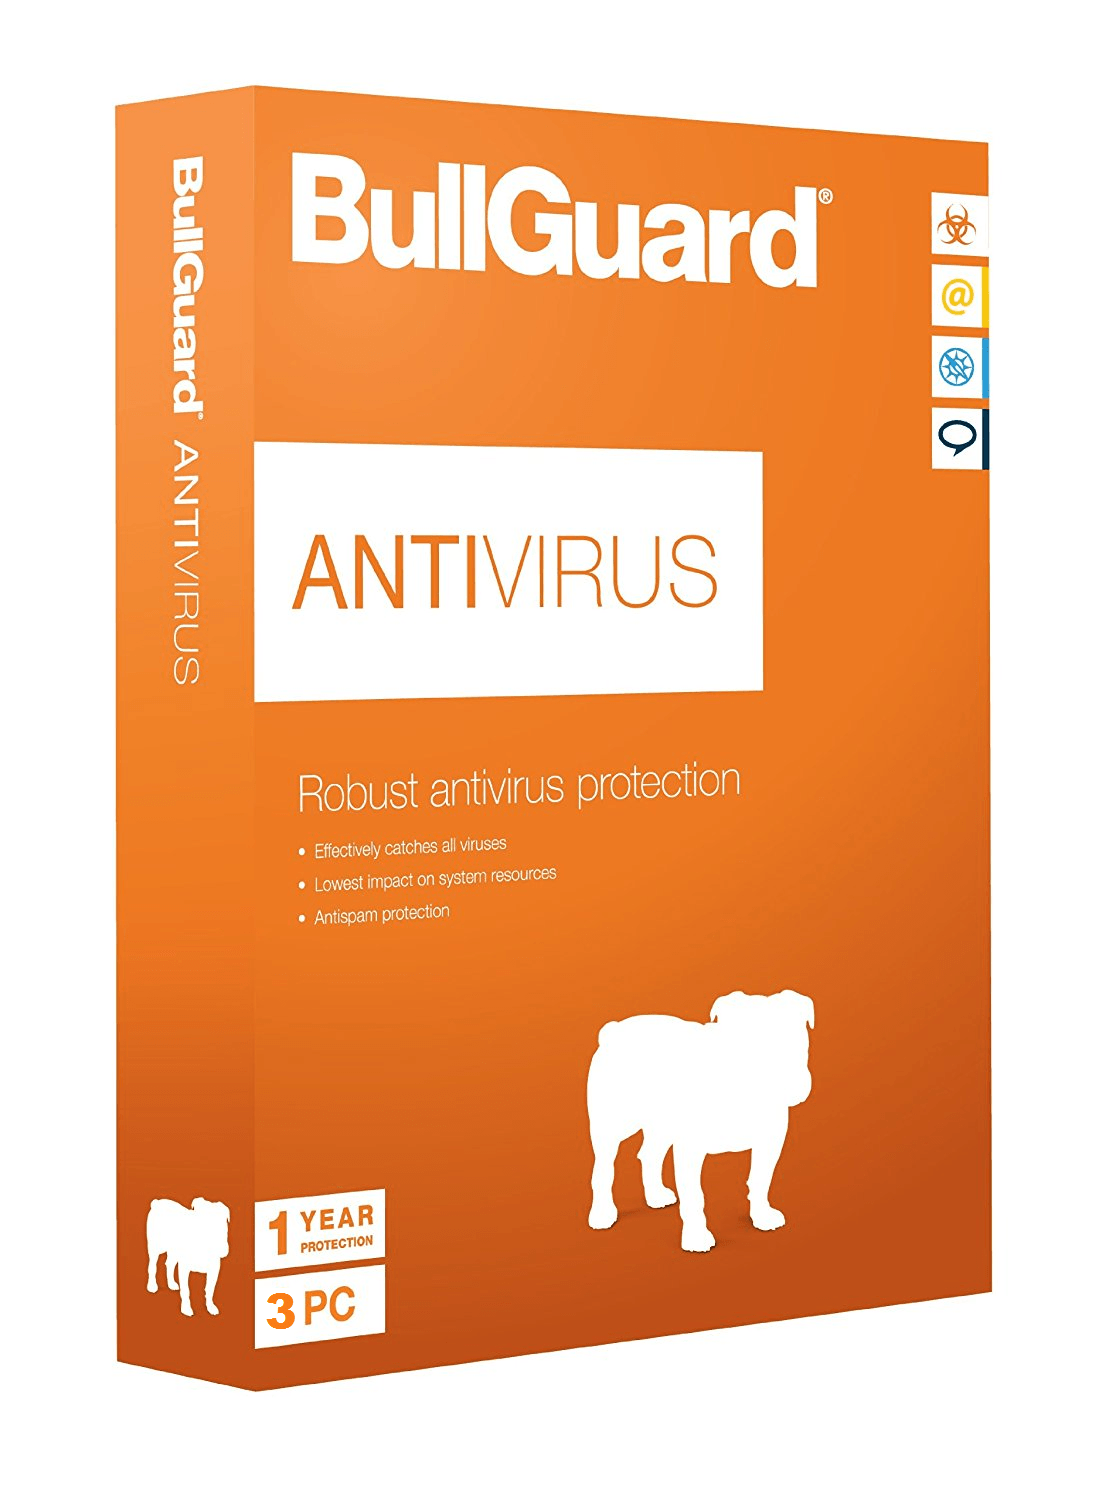 BullGuard Antivirus Protection 12 Months